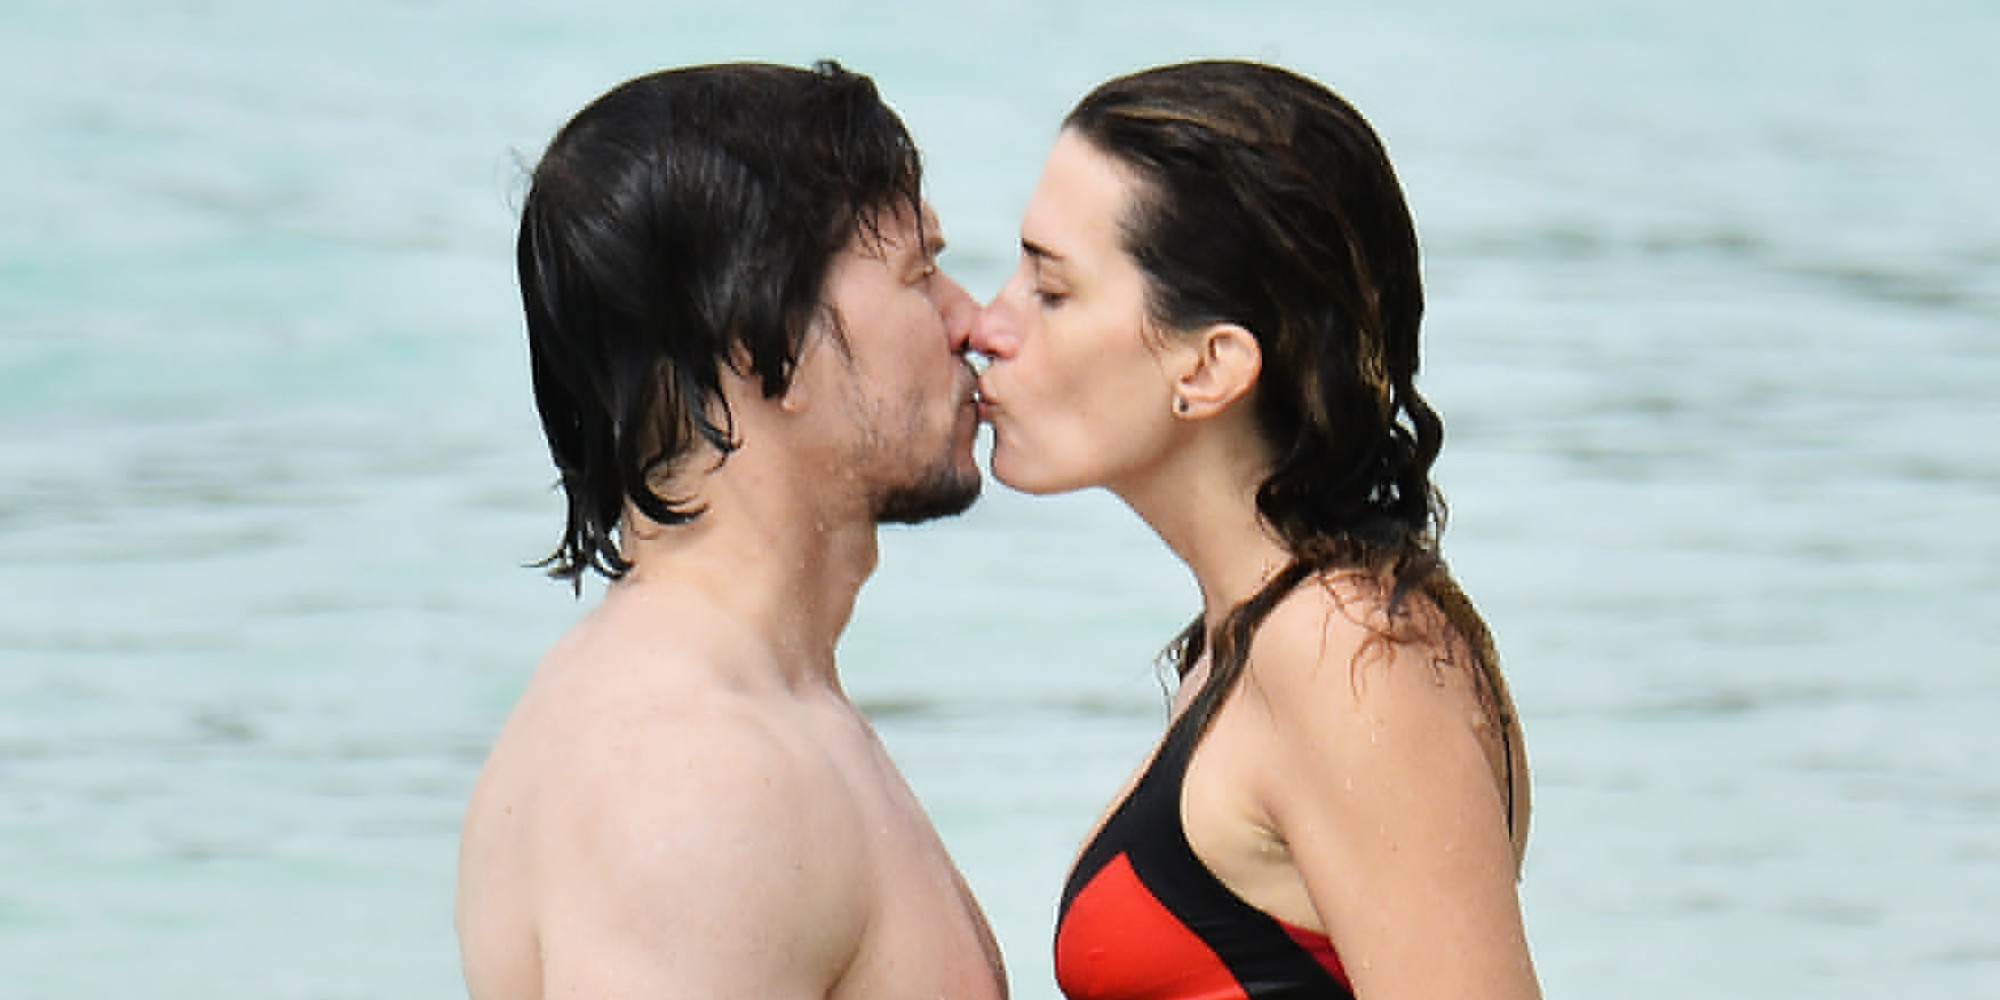 Mark Wahlberg And His Wife Bring Their PDA To The Beach | HuffPost